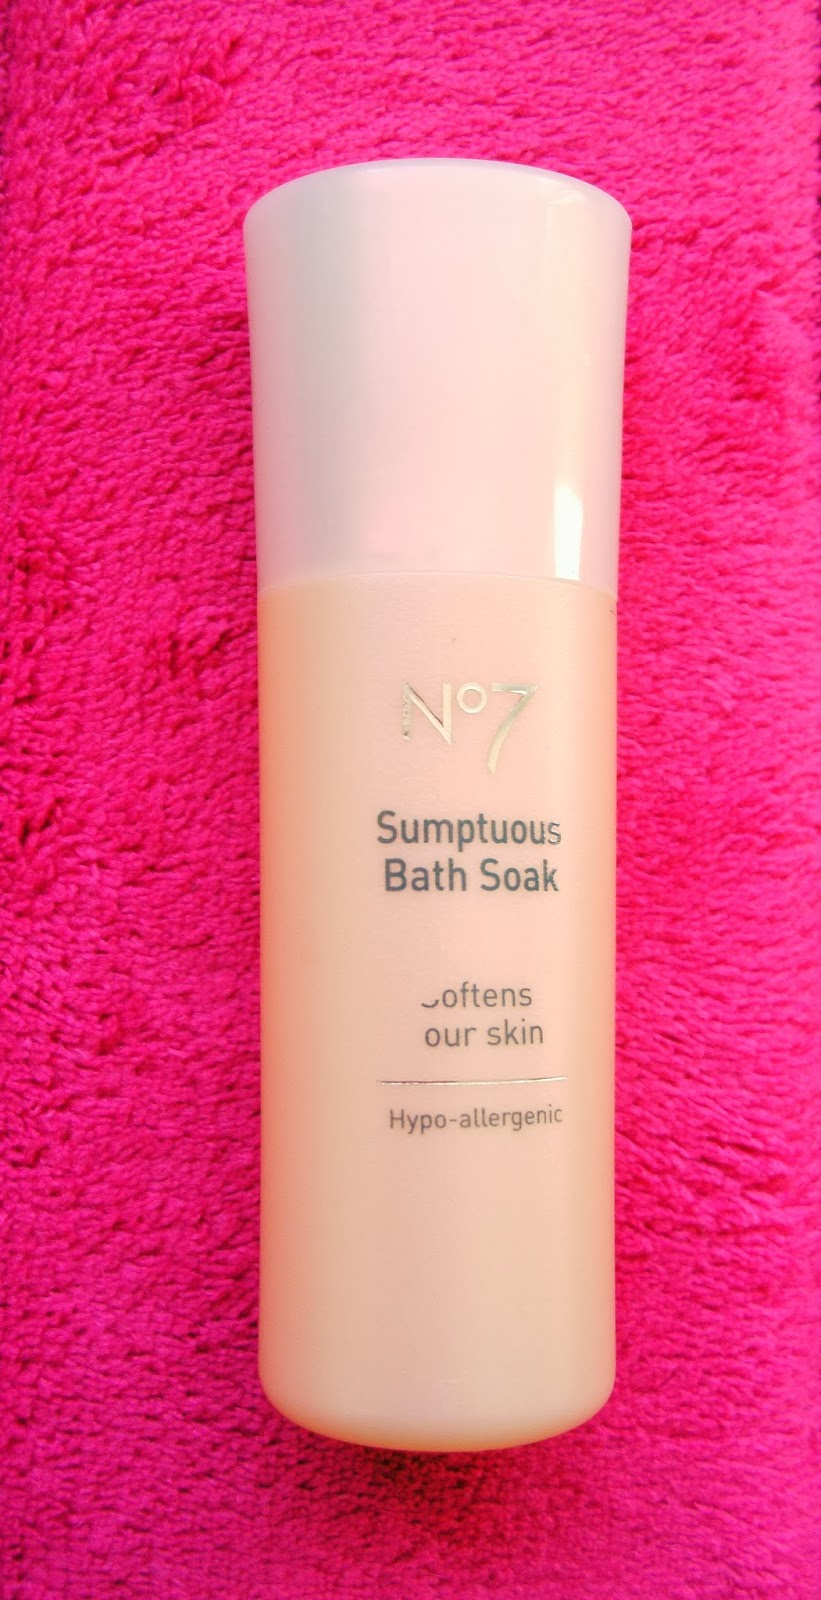 No 7 Sumptuous Bath Soak